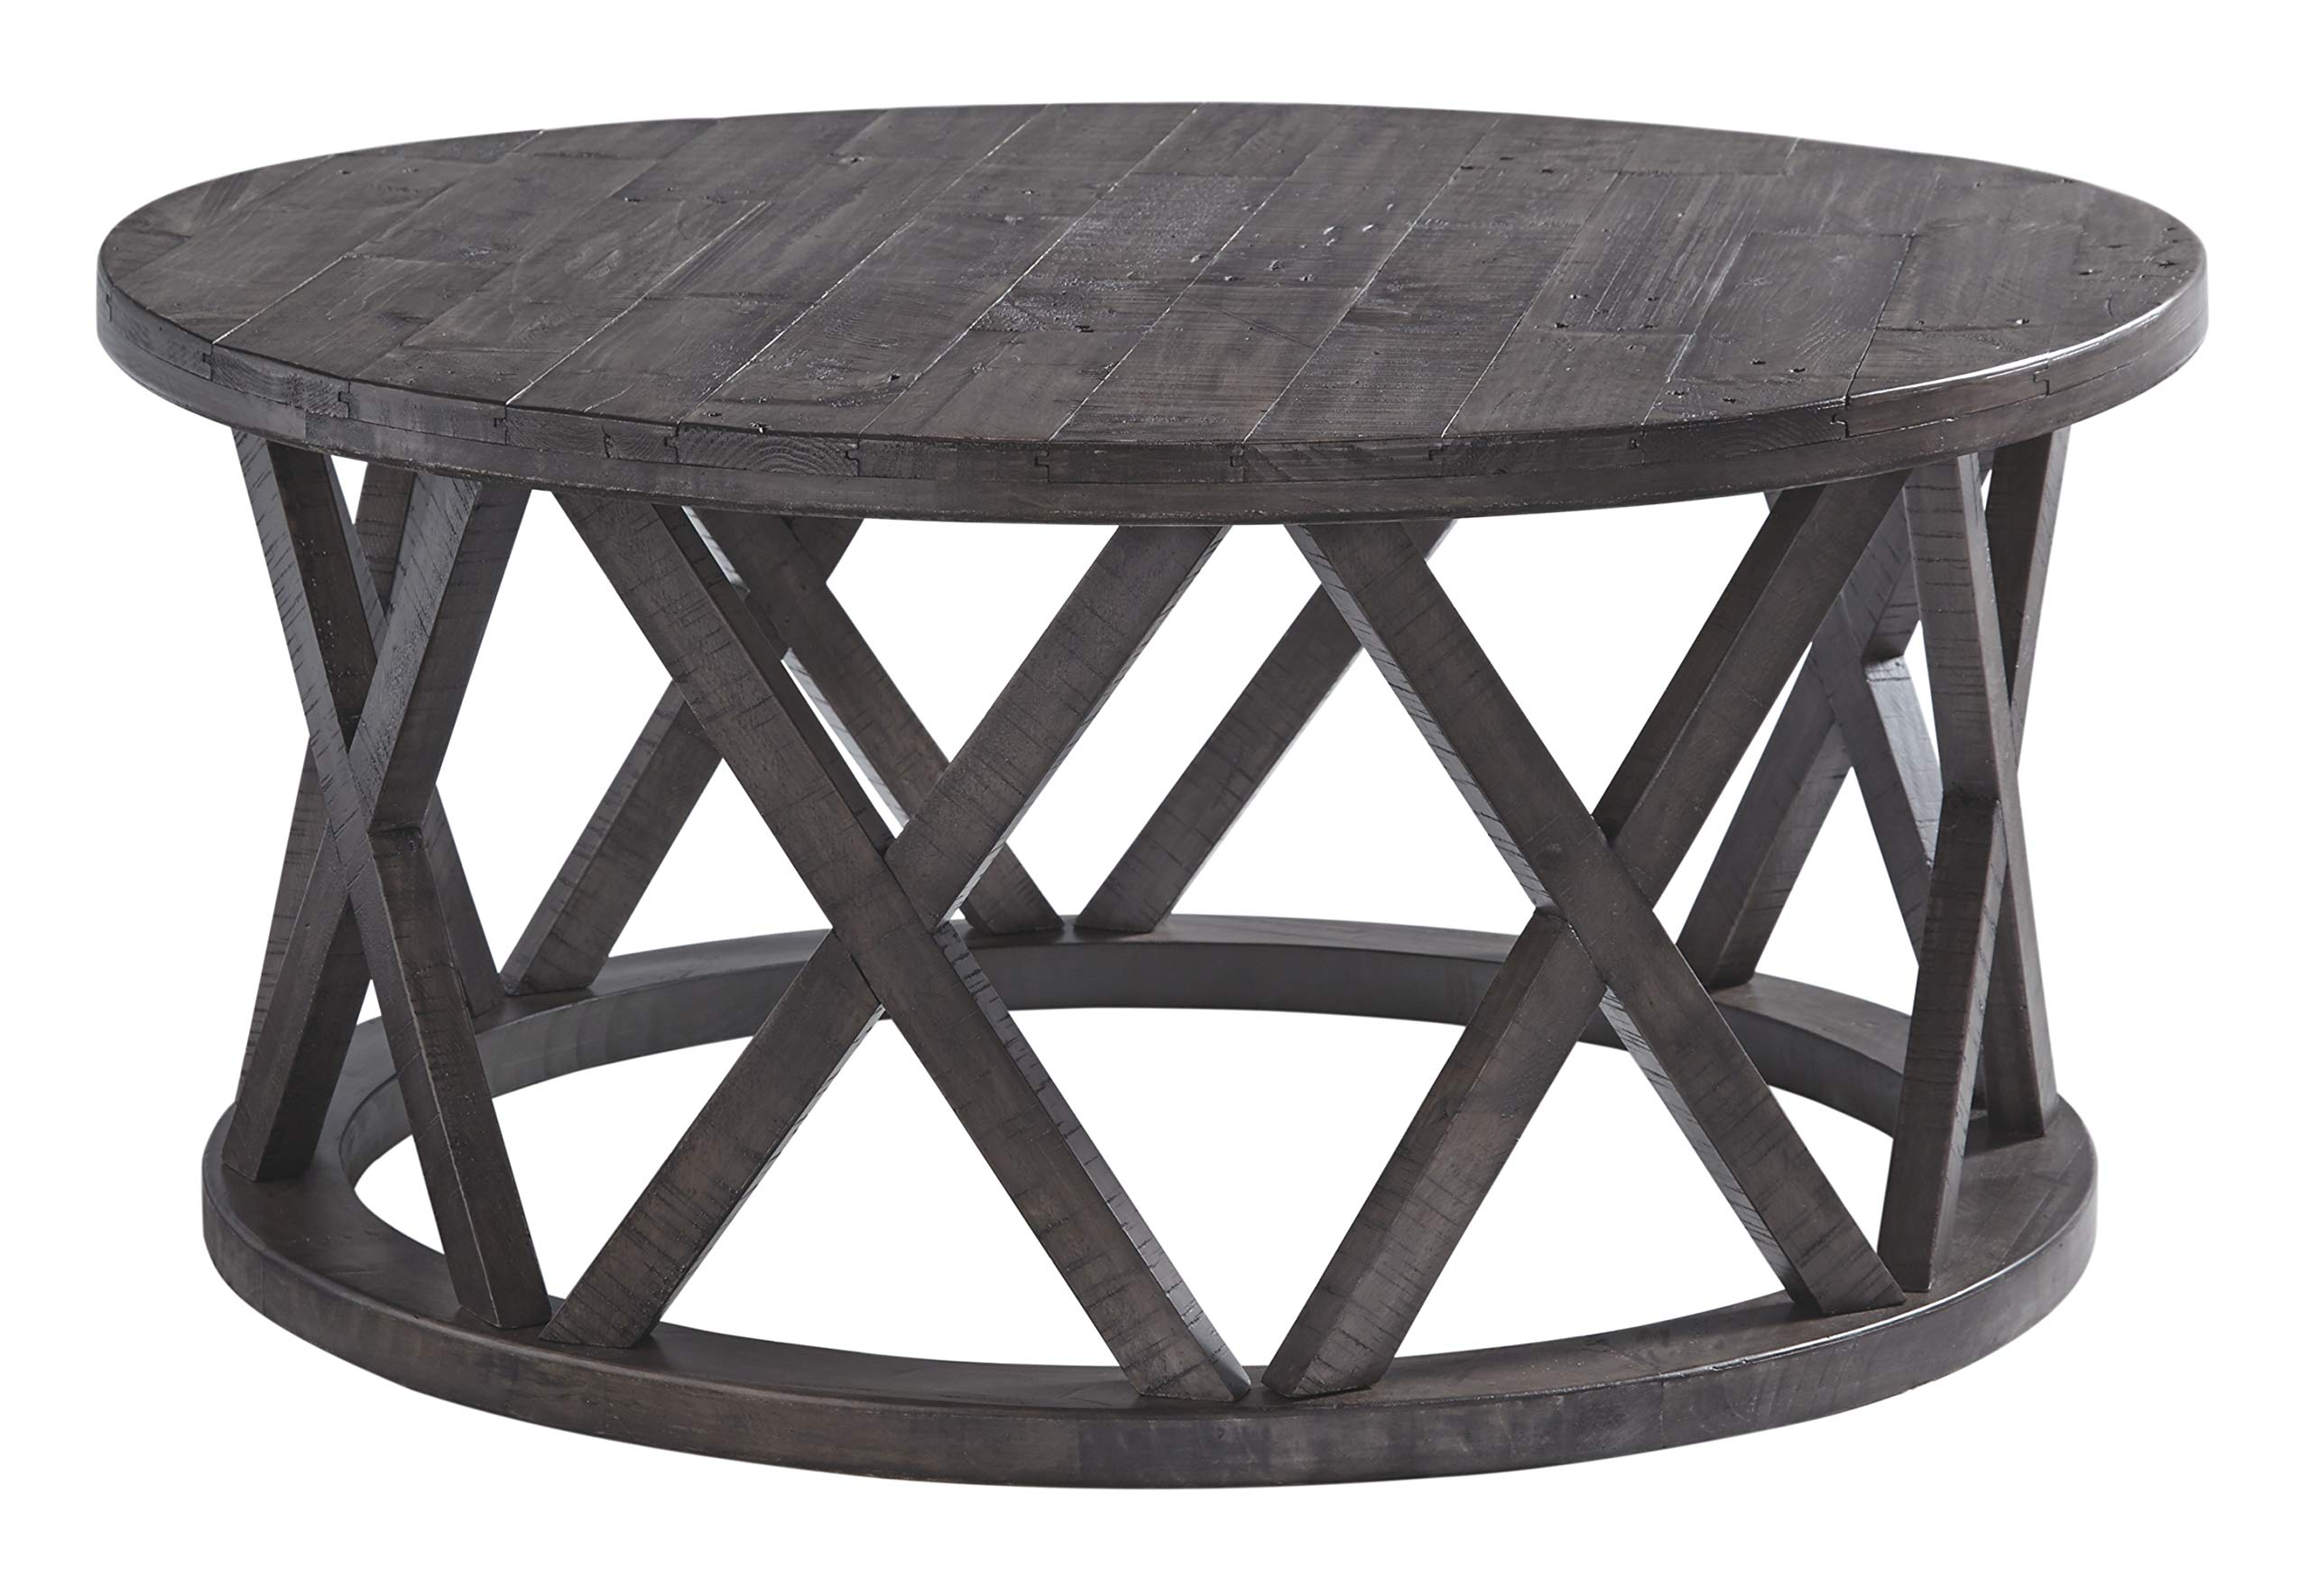 Signature Design by Ashley T711-8 Sharzane Round Cocktail Table, Grayish Brown by Signature Design by Ashley